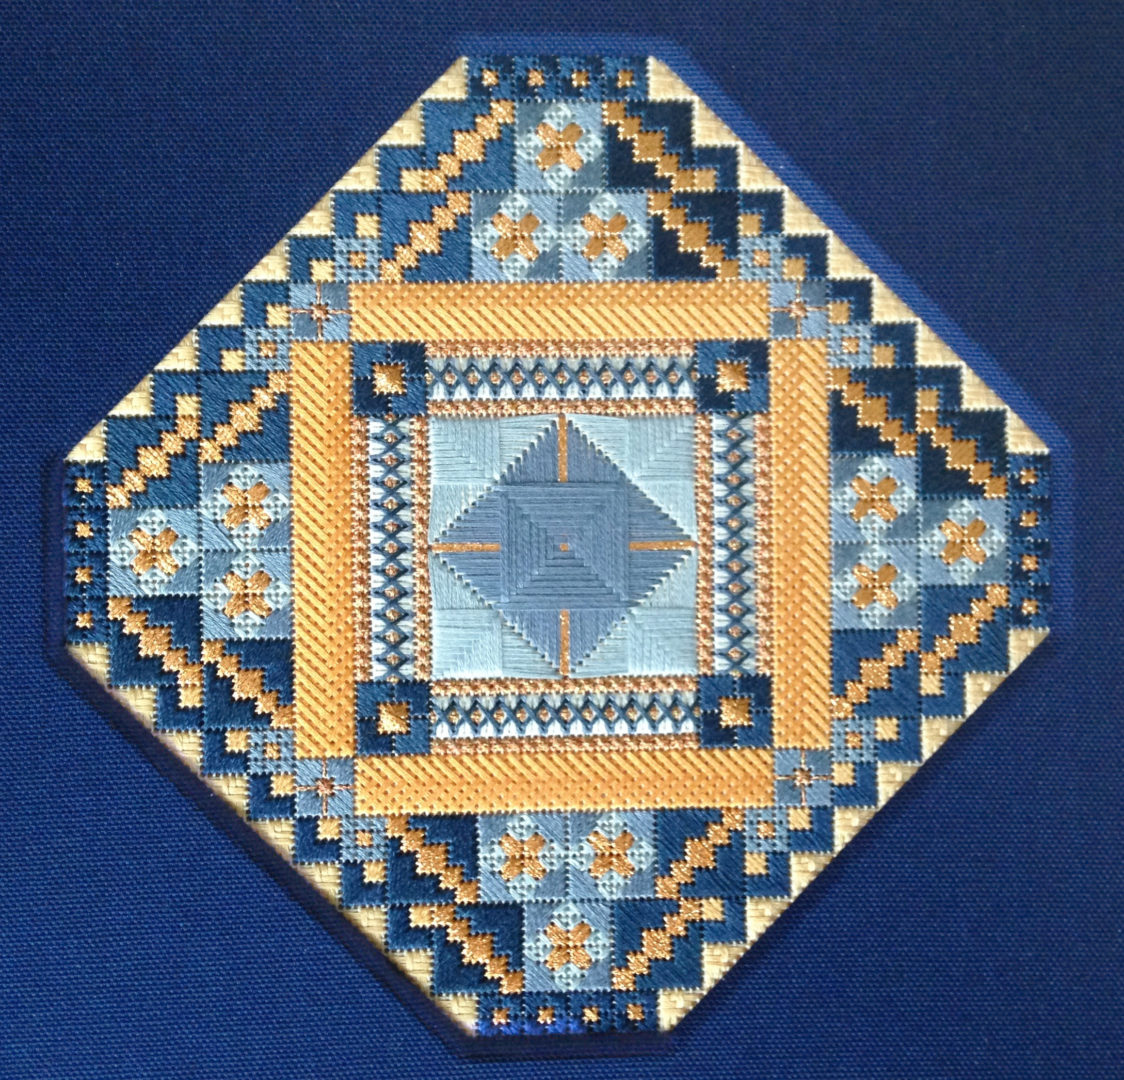 Mexican Tile in Main Colorway: Blue and Apricot